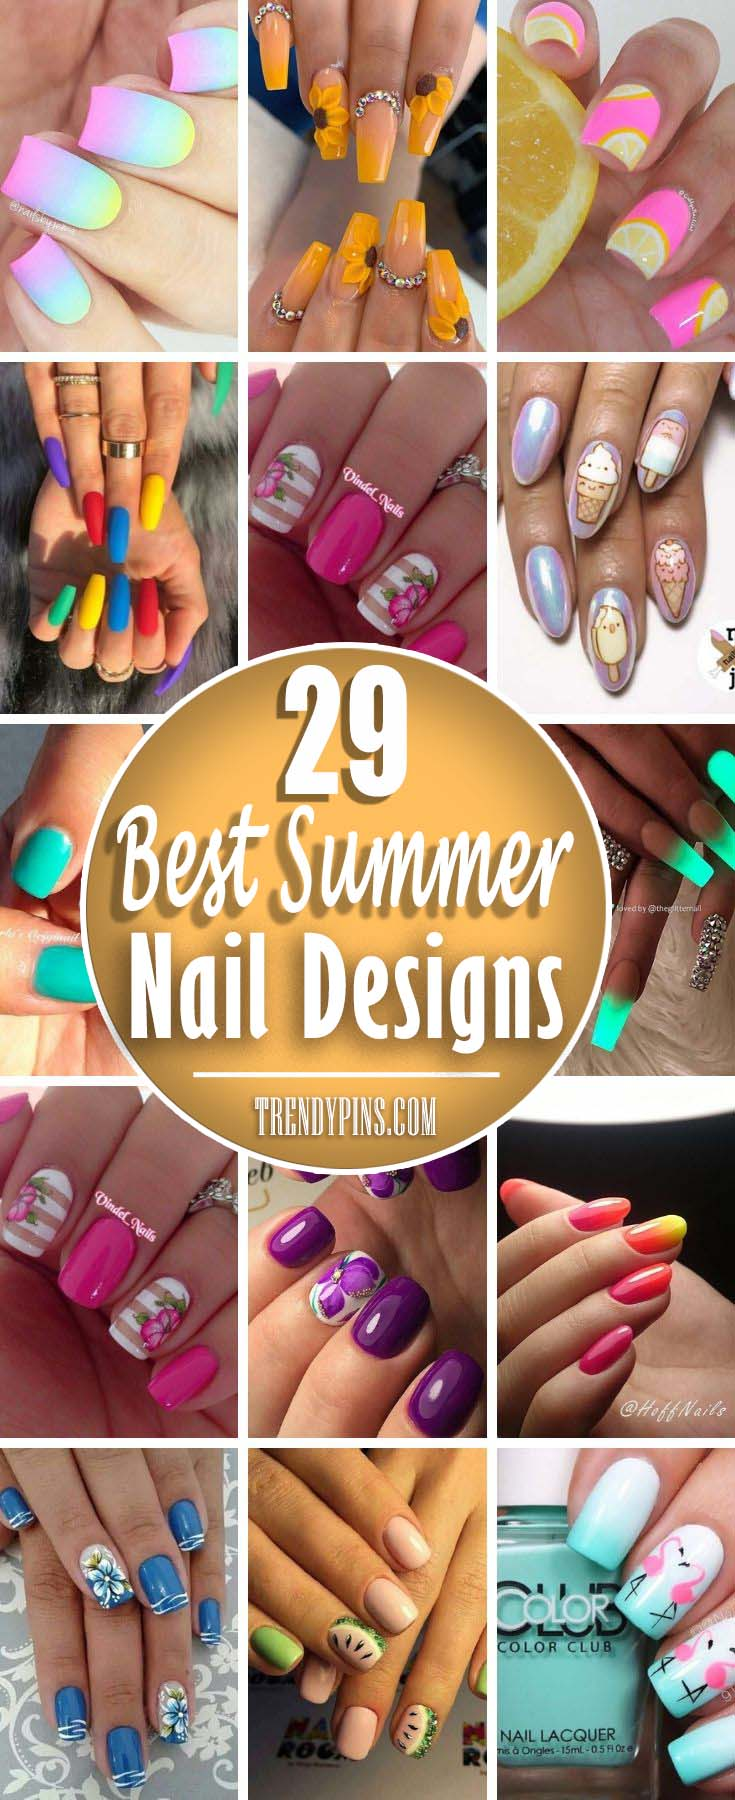 Create a summer mood around yourself by transferring it to your nails